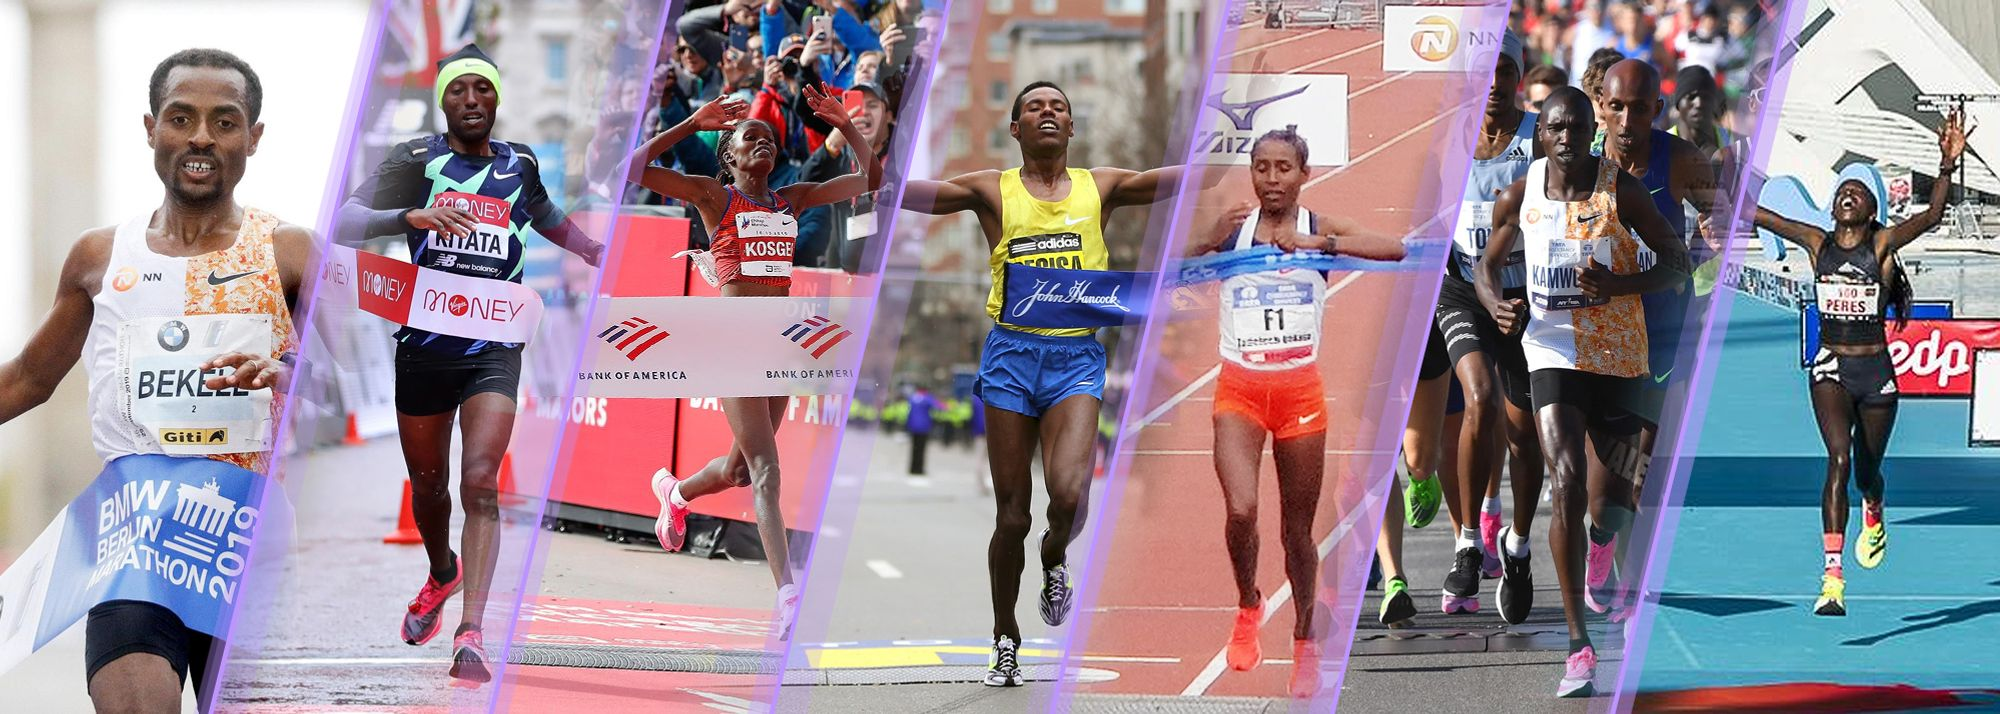 Looking ahead to a busy few months of marathon action